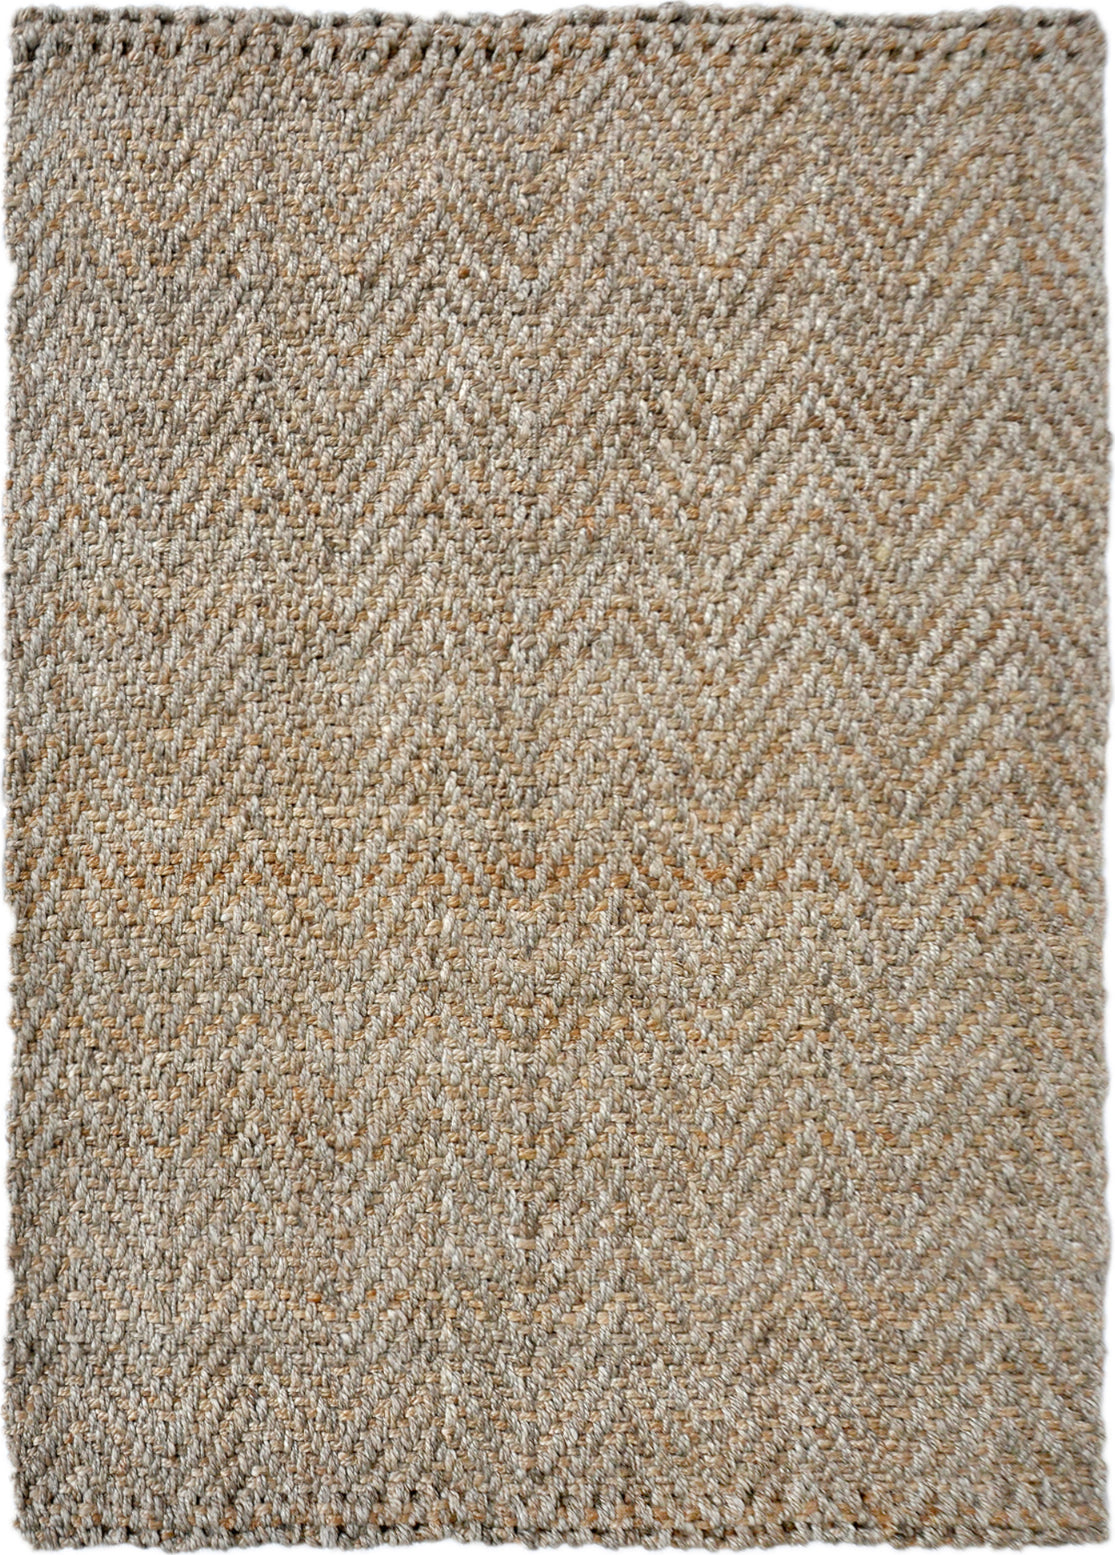 Trans Ocean Terra Chevron Natural Area Rug Mirror by Liora Manne main image